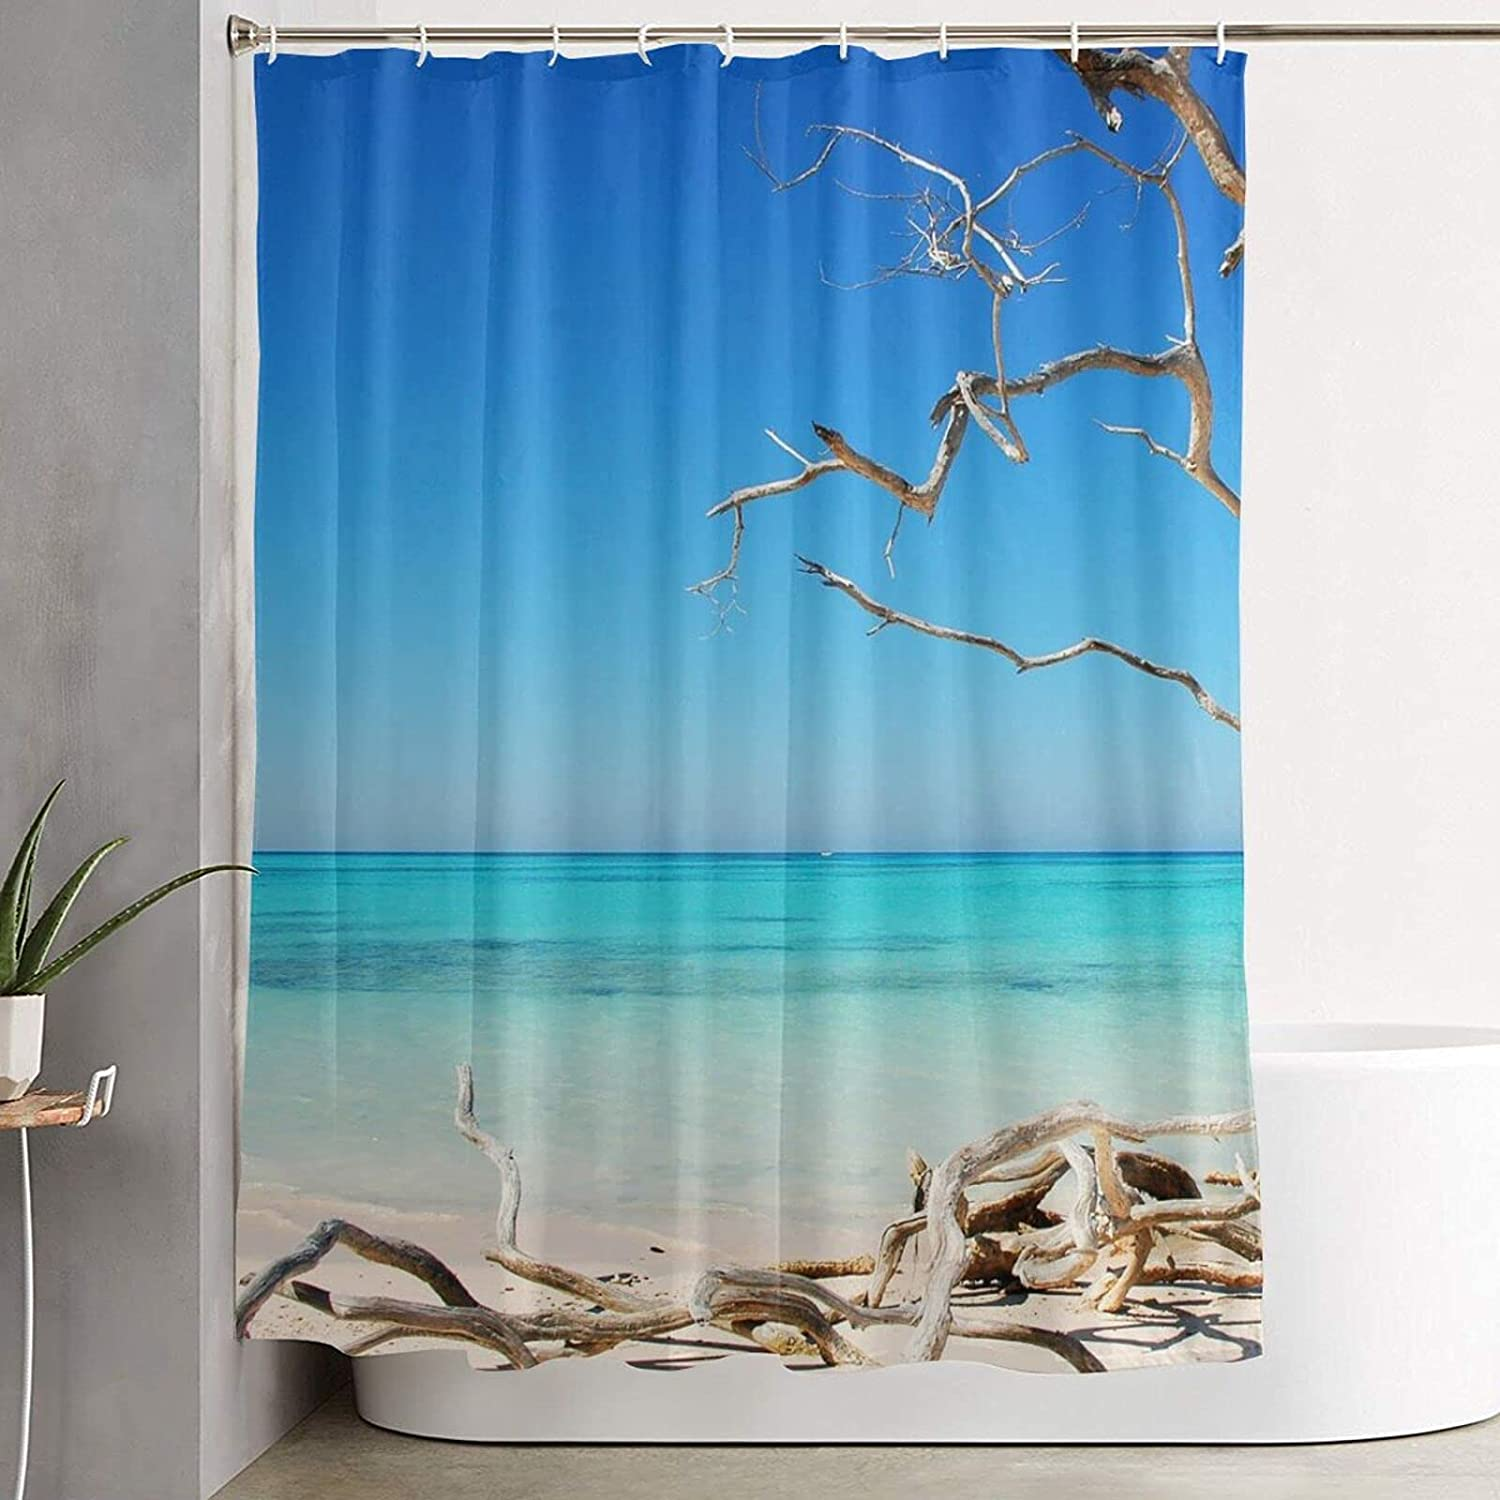 Beach Artistic and Fashionable Attention brand Shower Pattern Curtain Rich 2021 autumn and winter new Prin